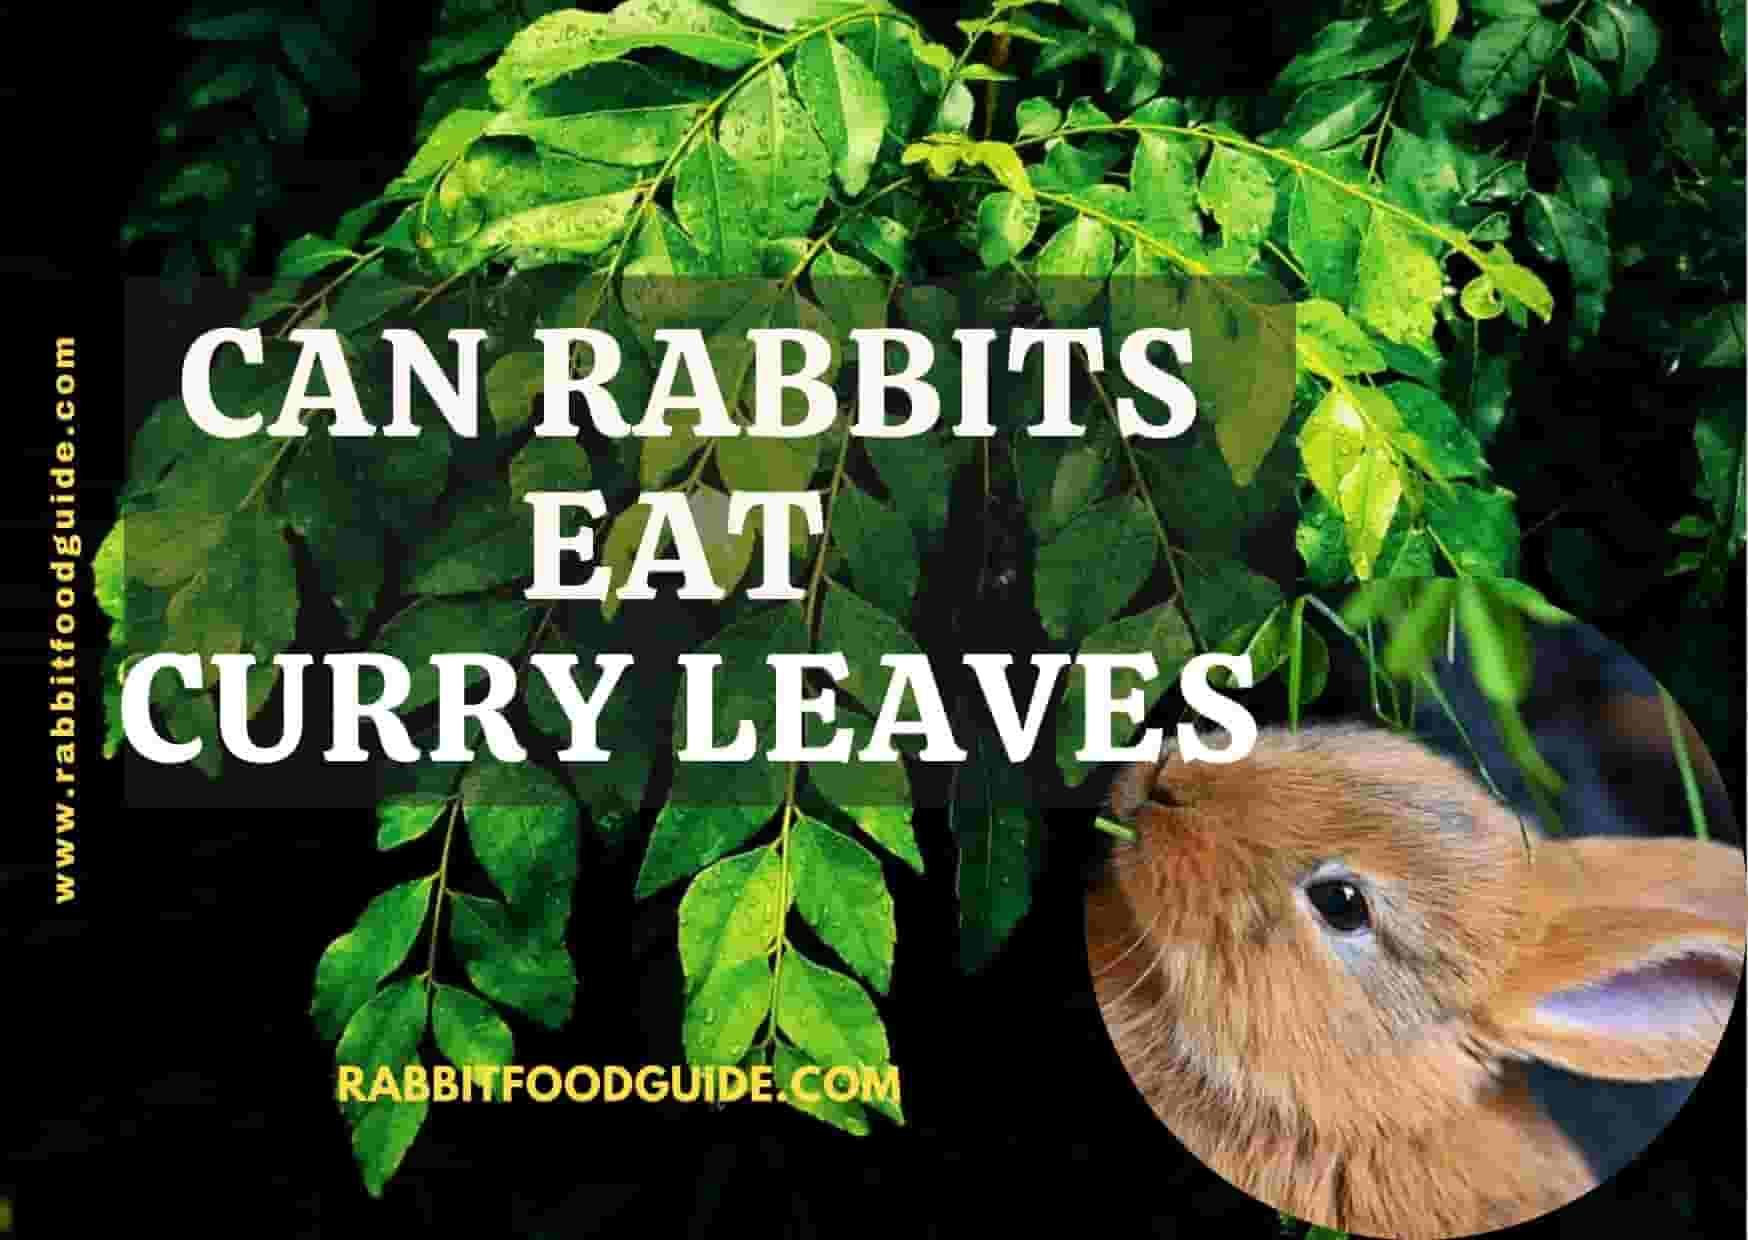 can rabbits eat curry leaves